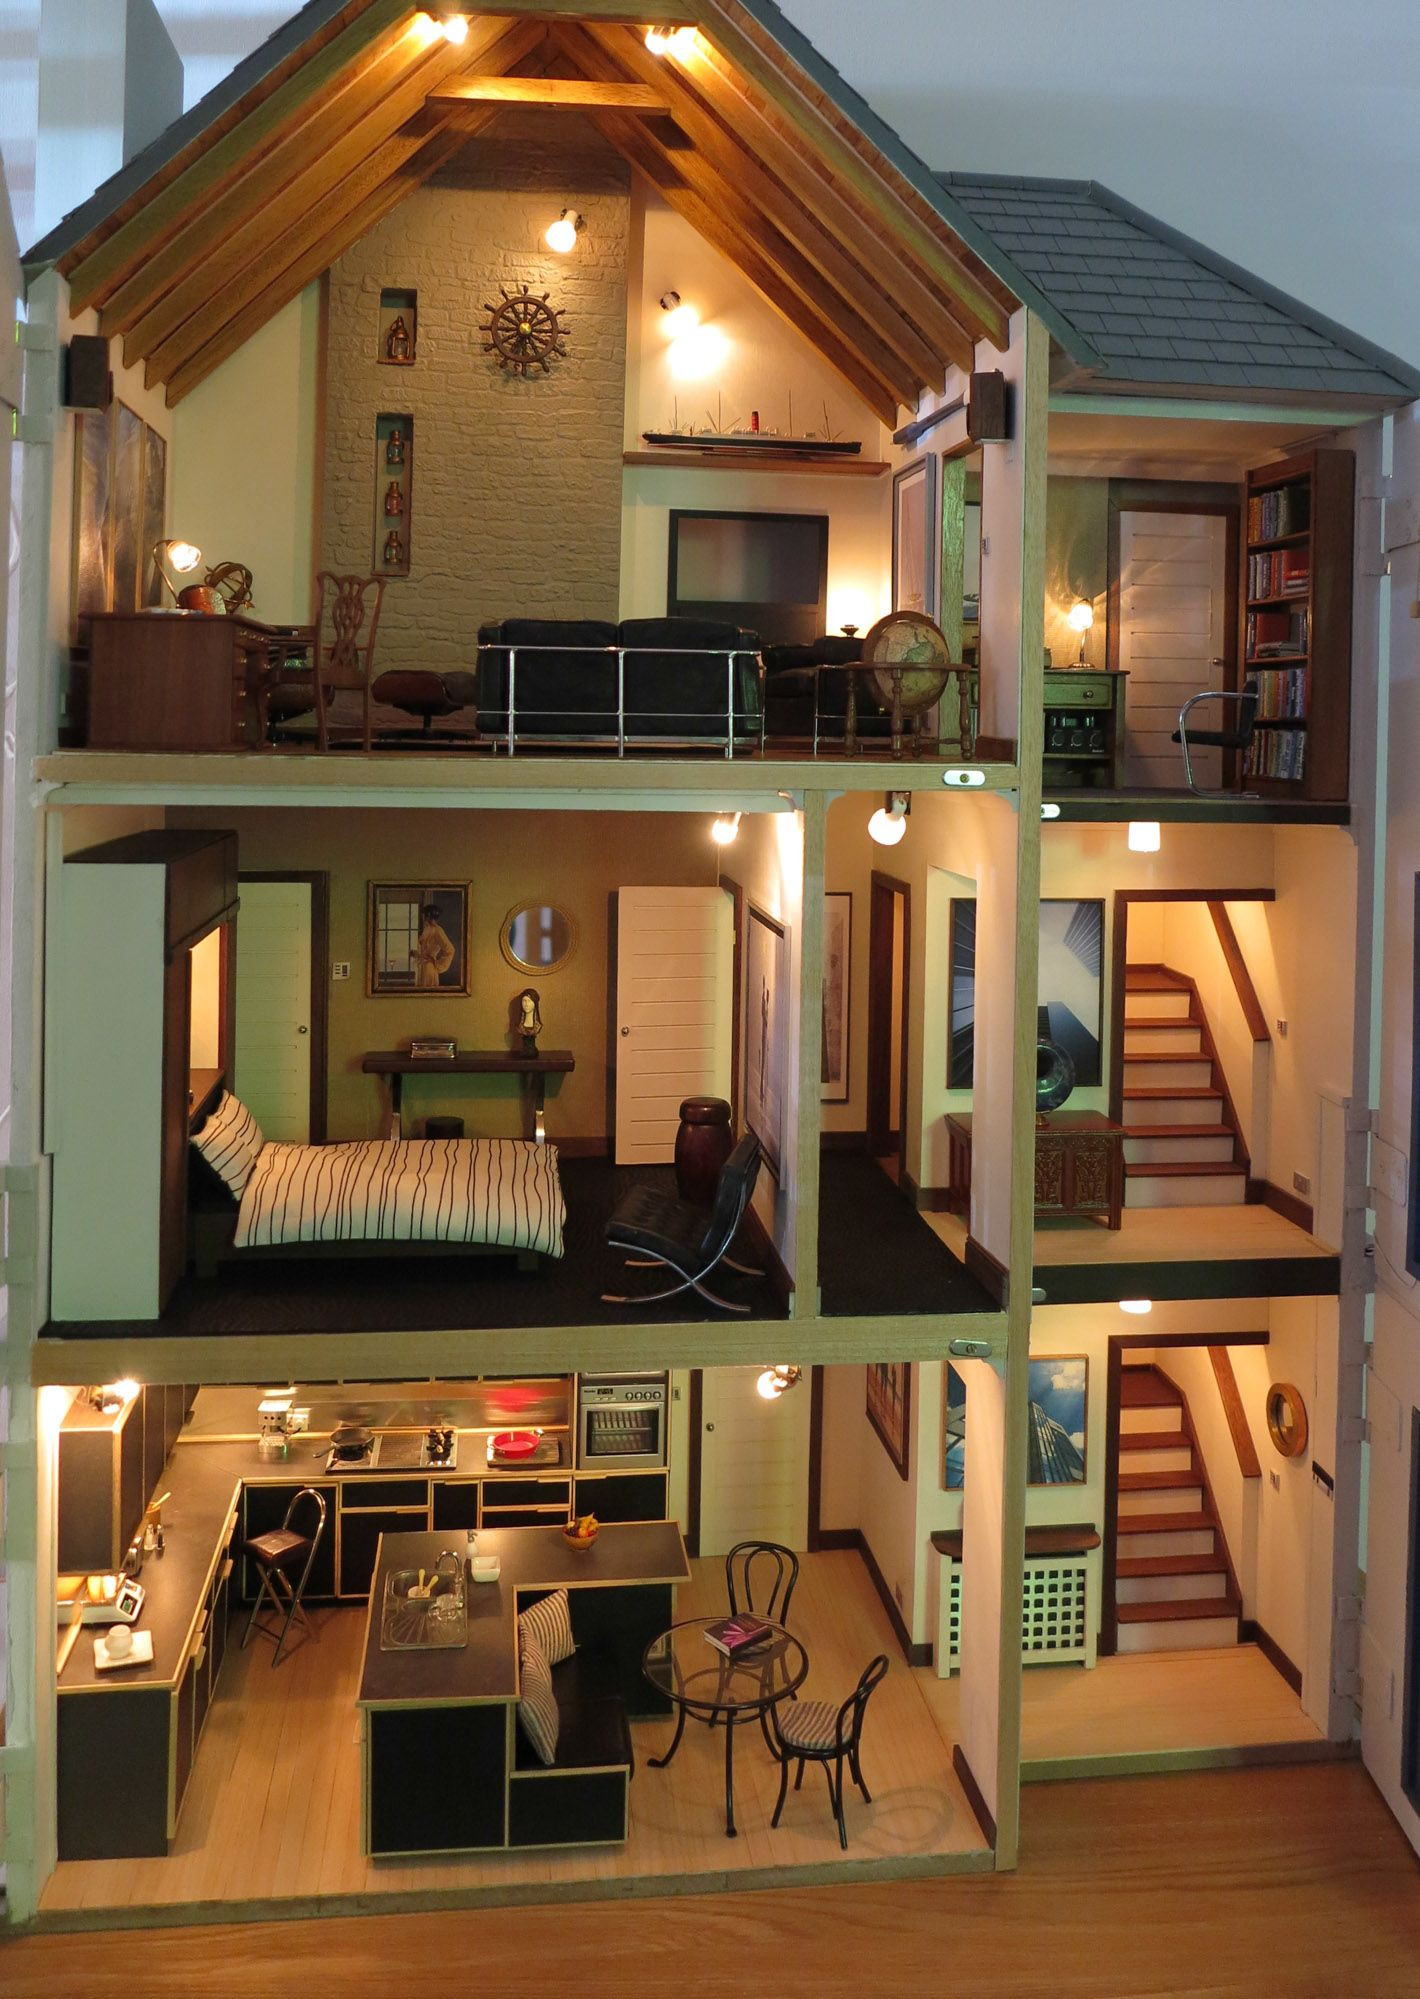 Lakeview House Interior | Miniature Houses | Pinterest | Doll houses ...